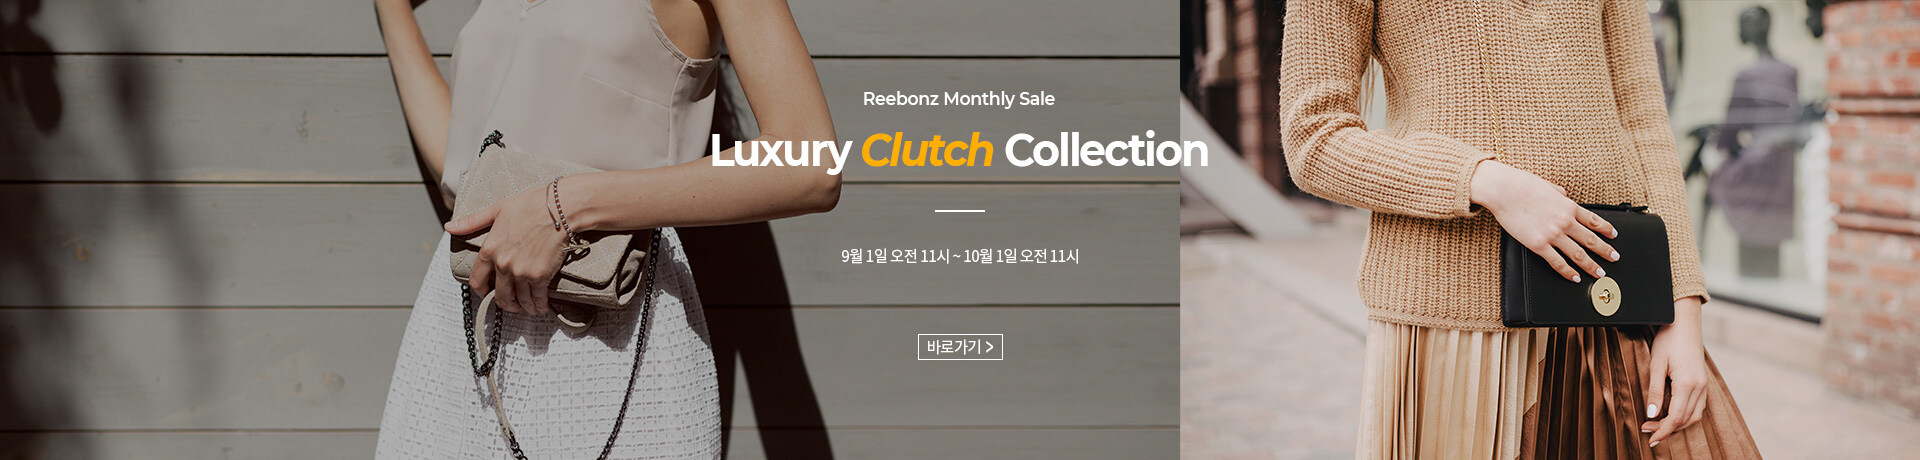 200901_sy_luxuryclutchcollection_pc-_b99873_v2